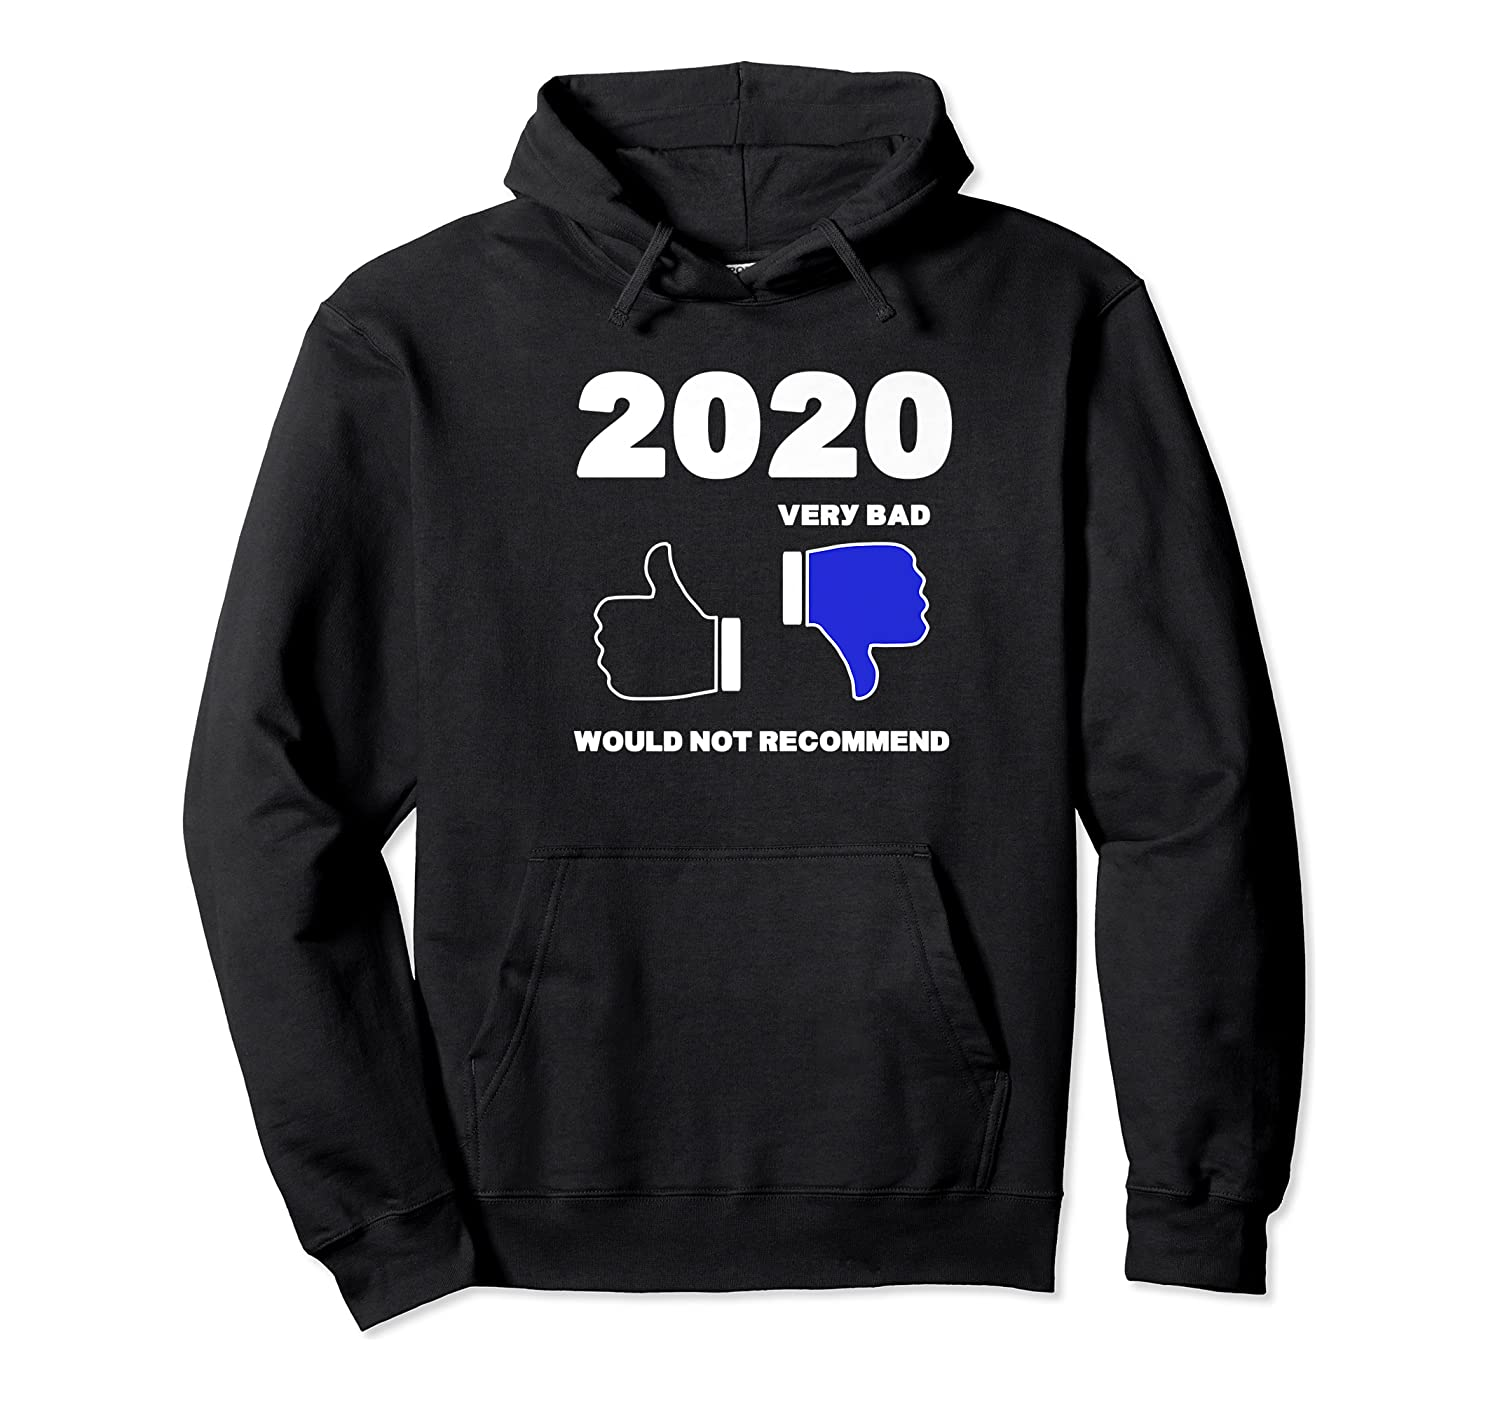 2020 Thumbs Down Rating Very Bad Would Not Recomd Funny Shirts Unisex Pullover Hoodie